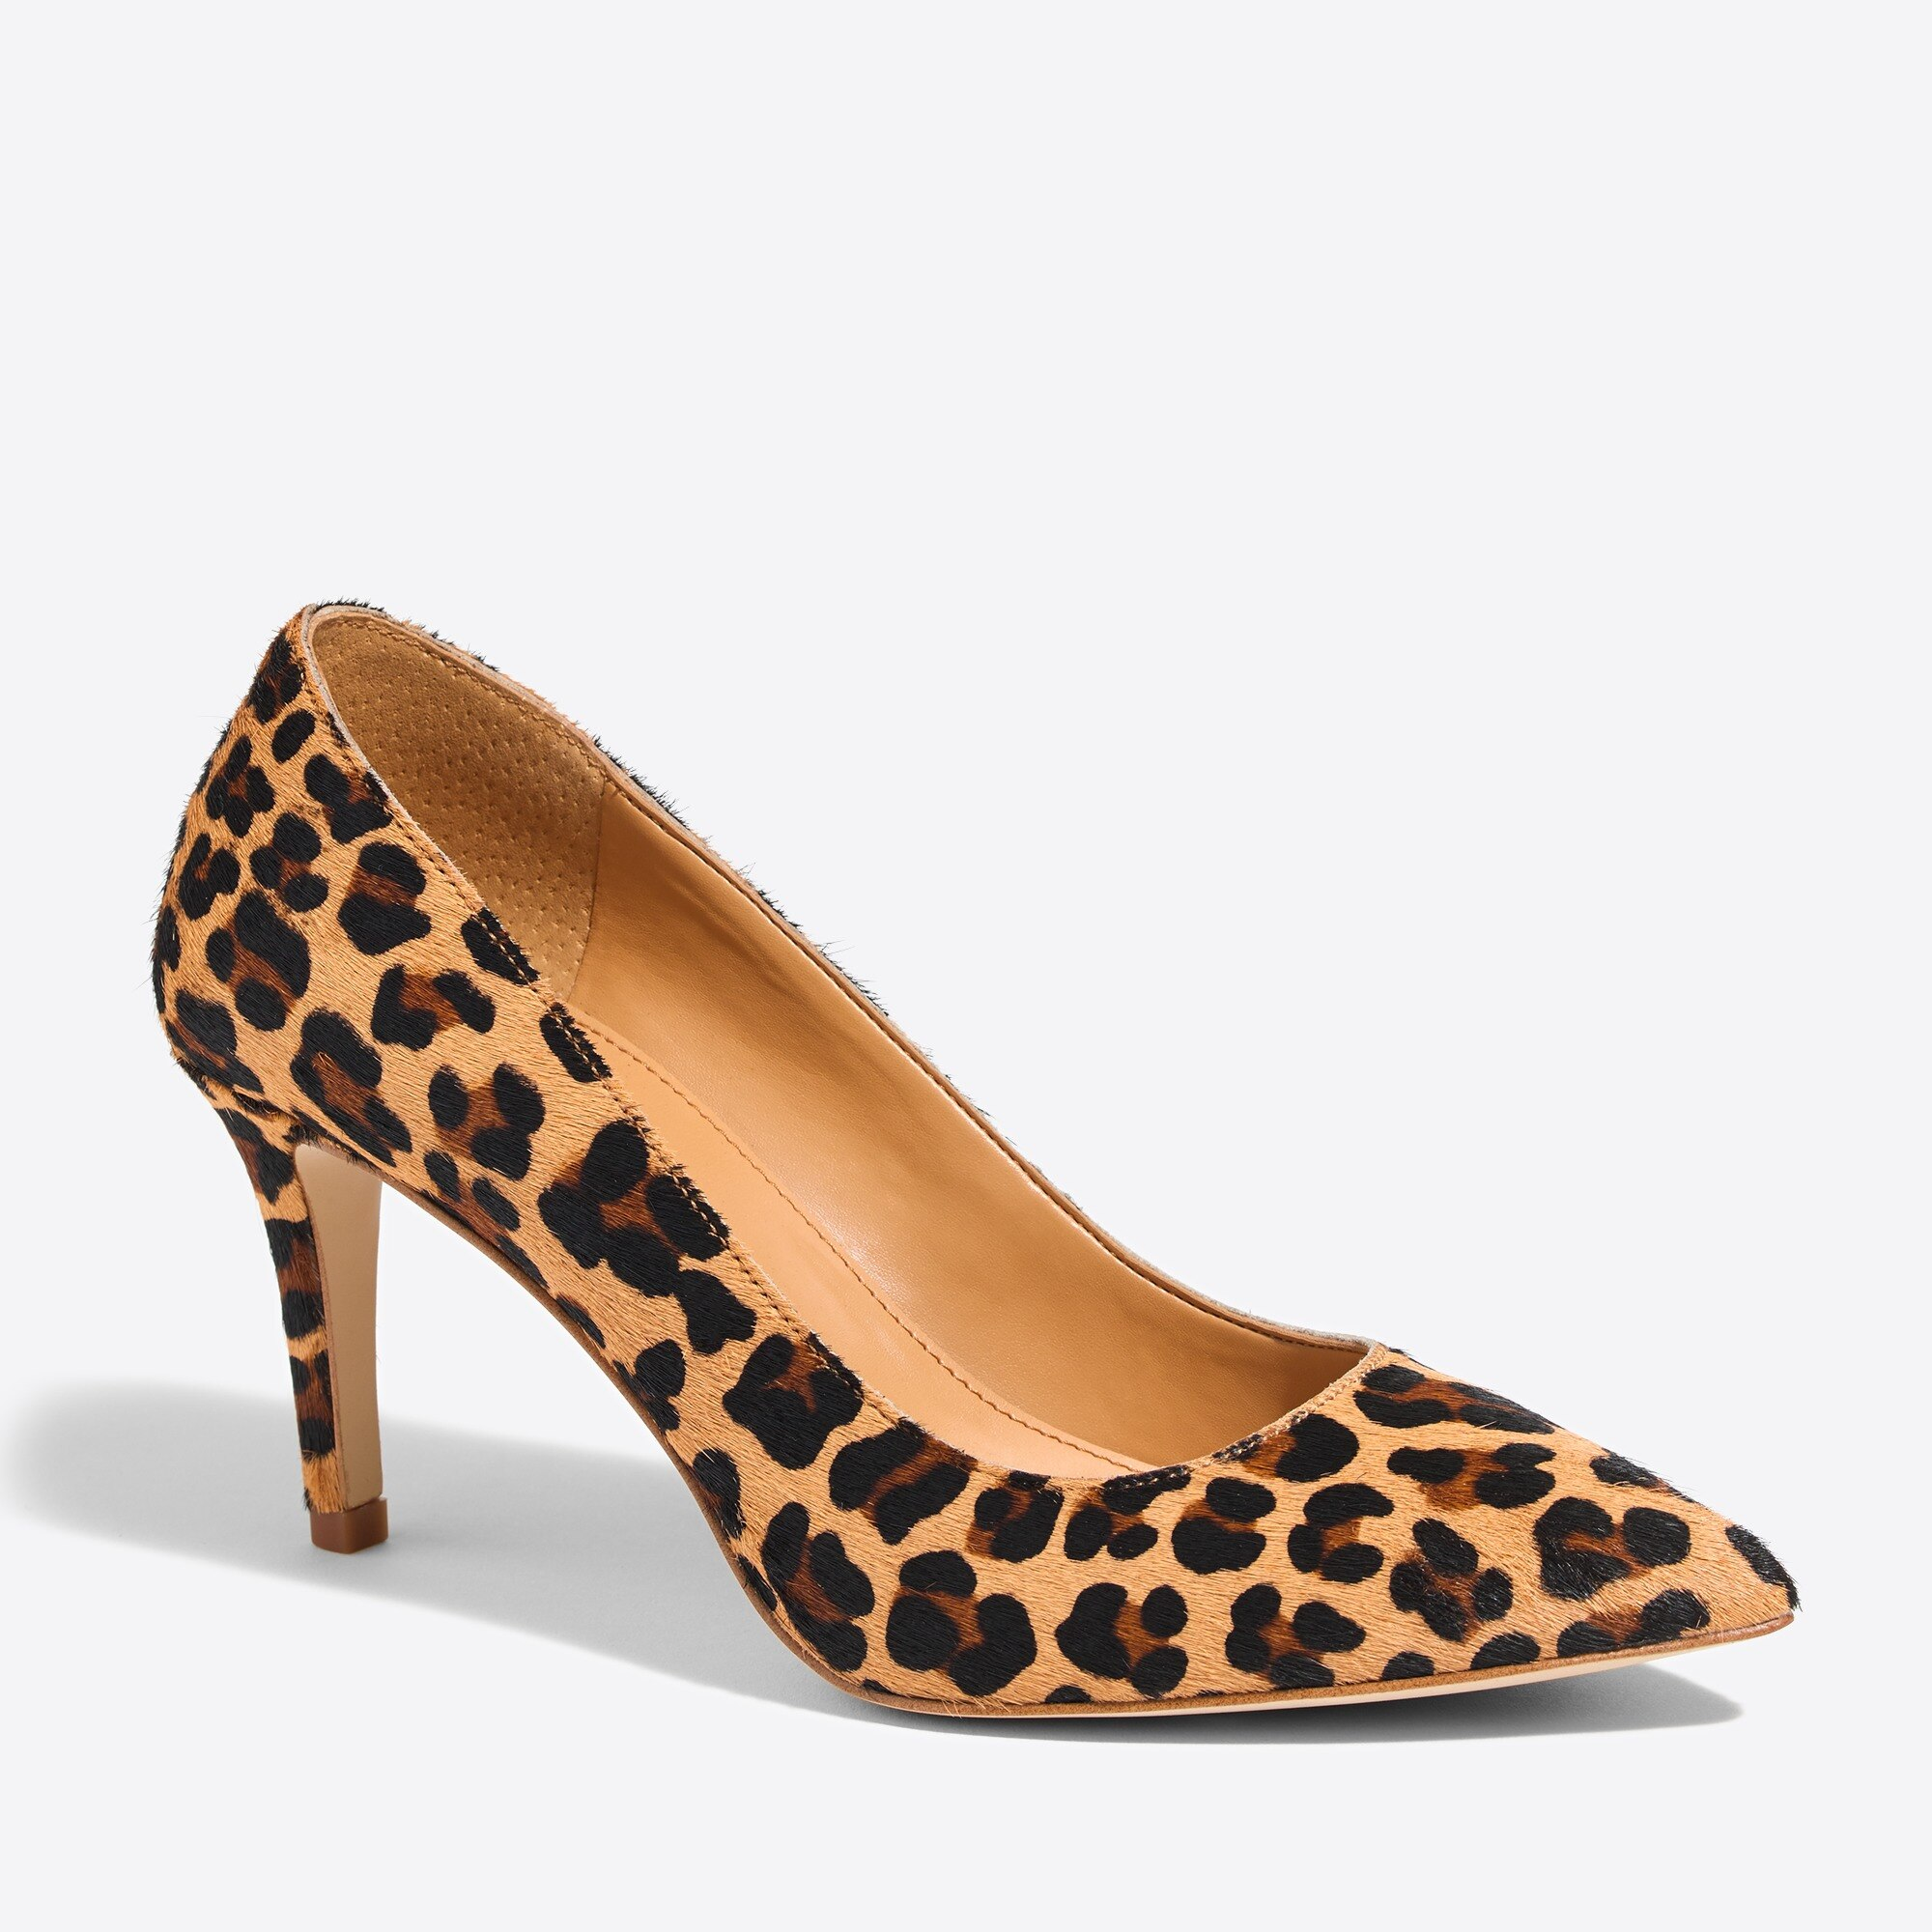 Isabelle calf hair pumps